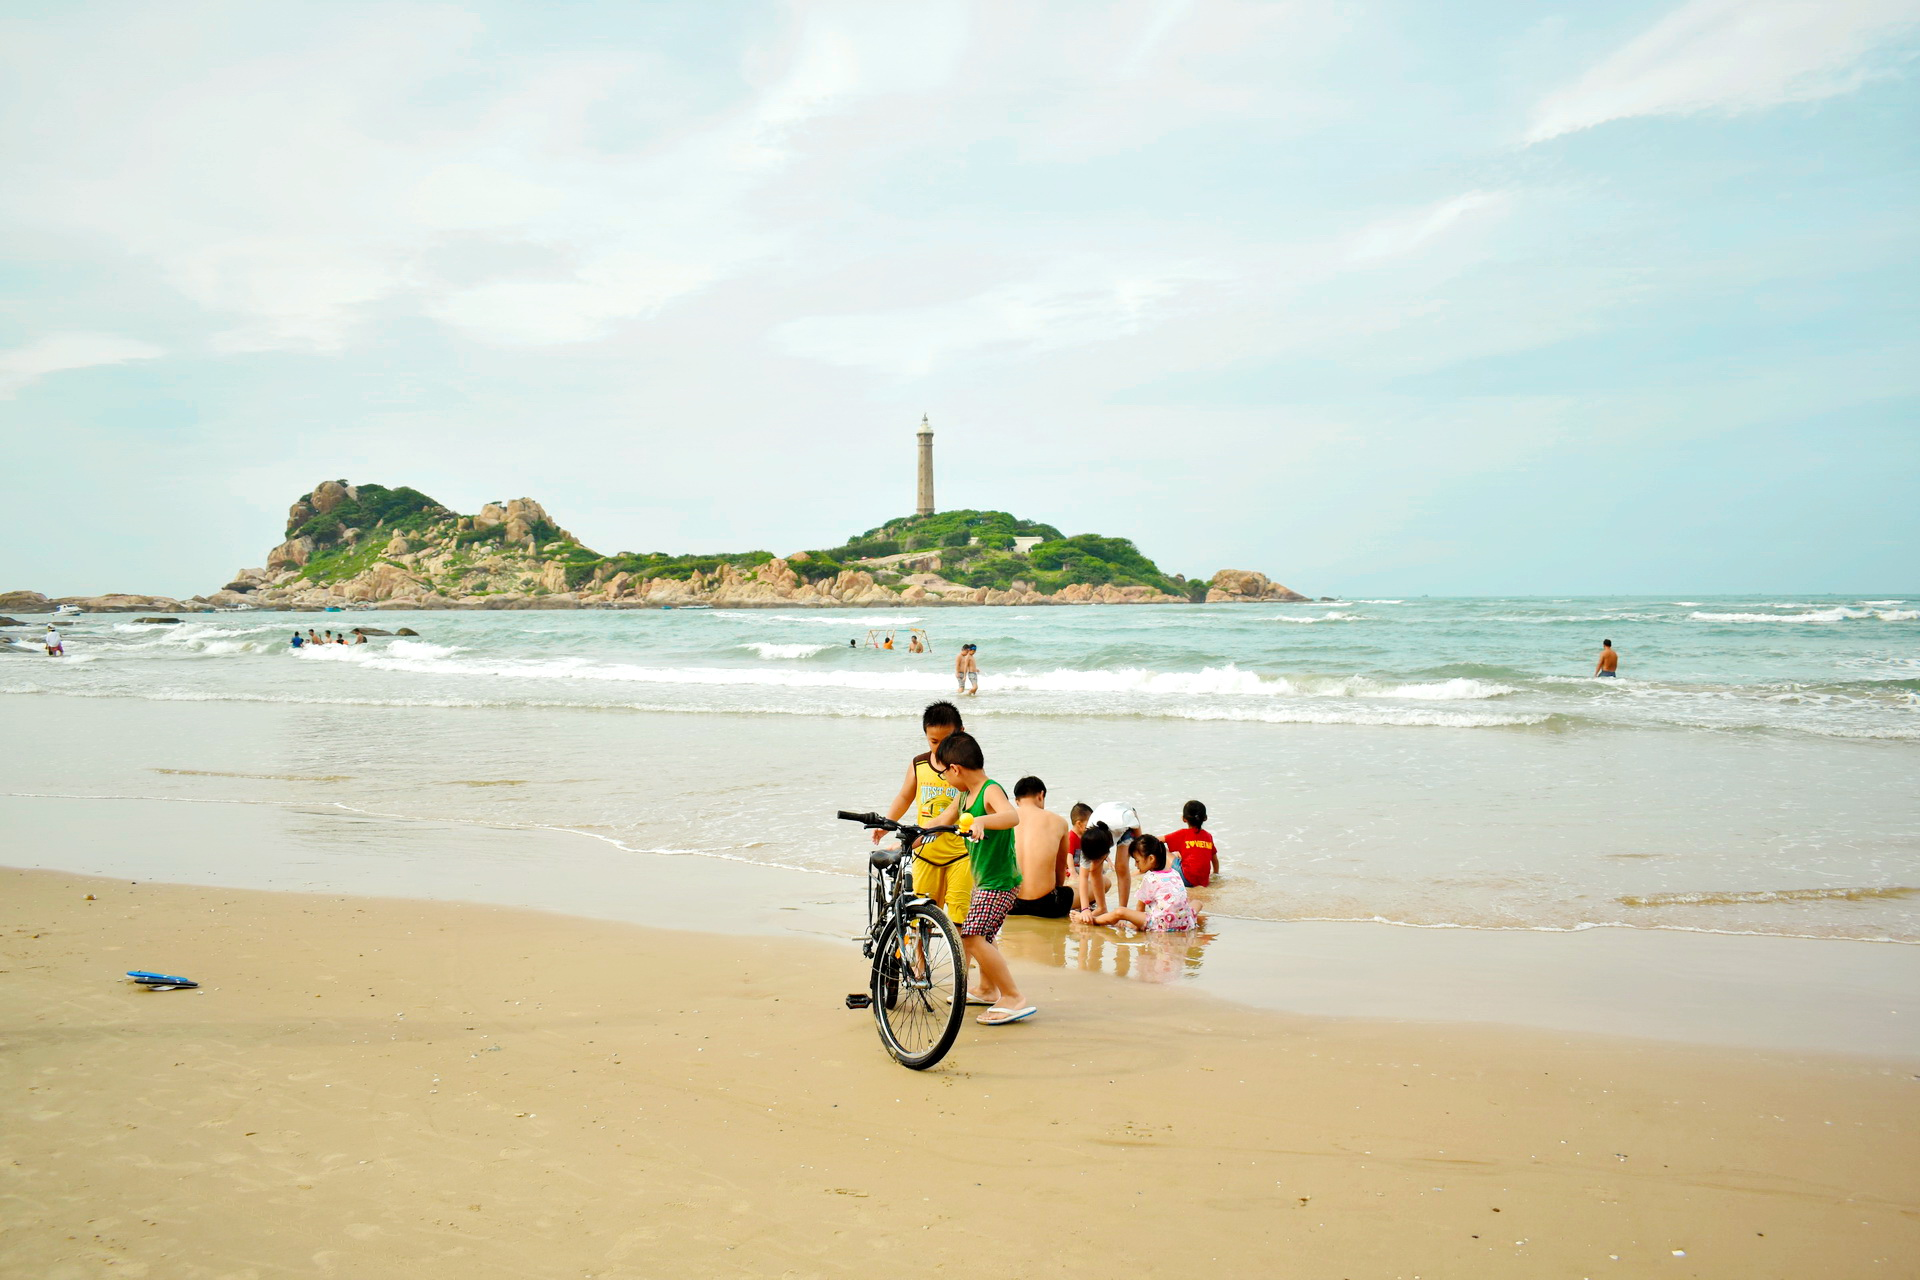 Beach-goers take a swim in the water at the Ke Ga Beach in Binh Thuan Province, Vietnam as the Ke Ga Lighthouse is seen in the background. Photo: Tuan Son / Tuoi Tre News